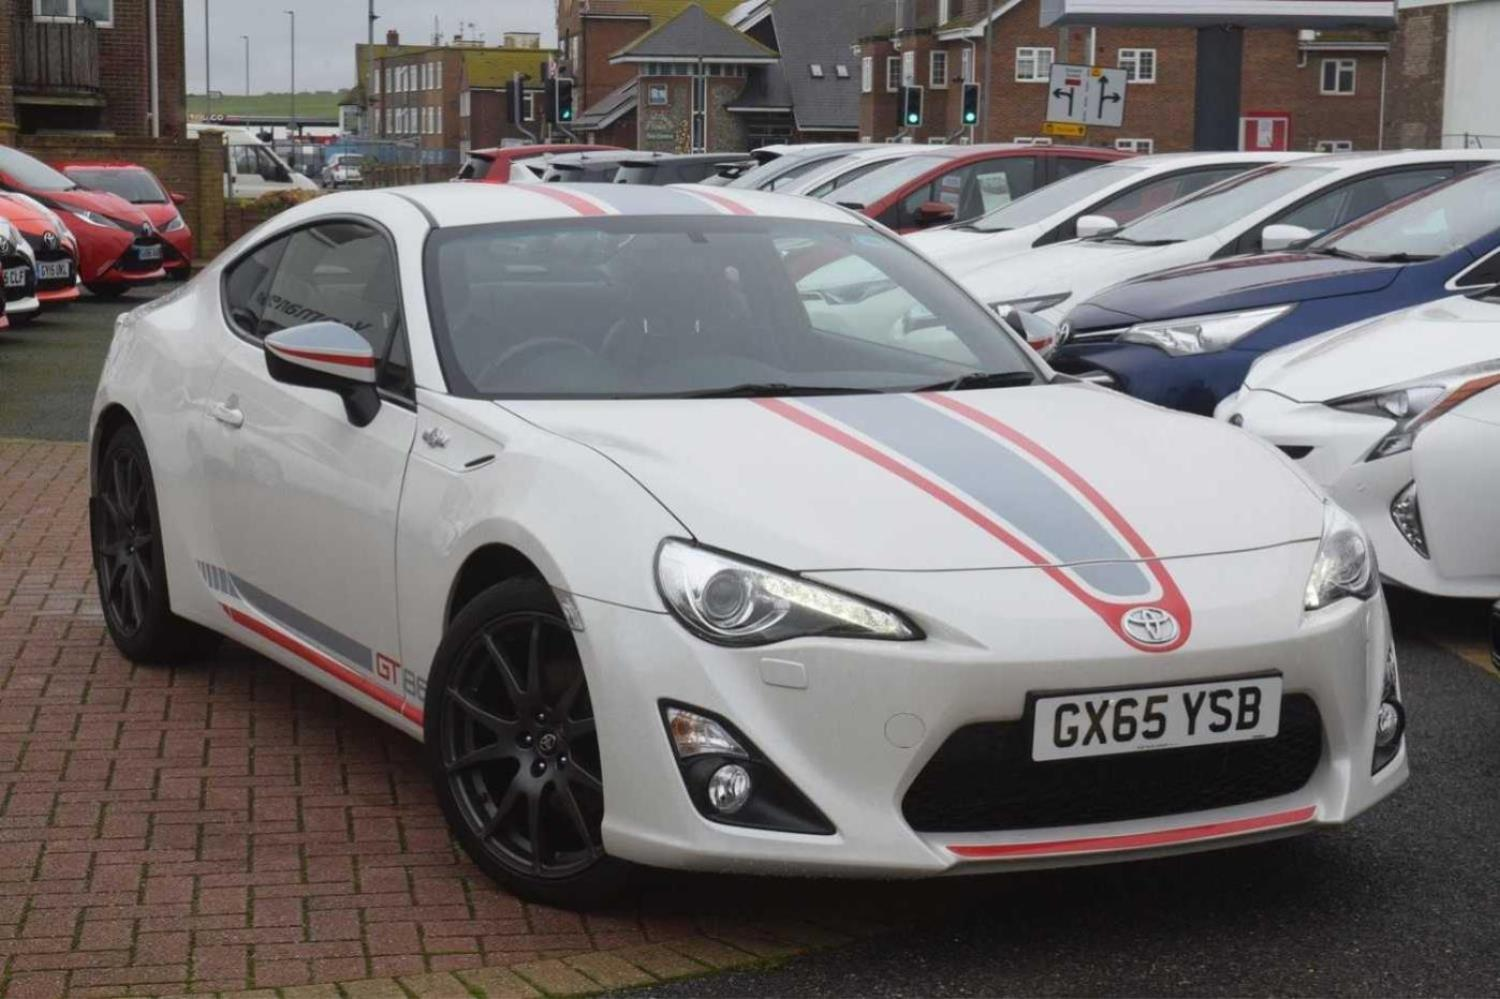 Toyota Gt86 2.0 Blanco Coupe Petrol white